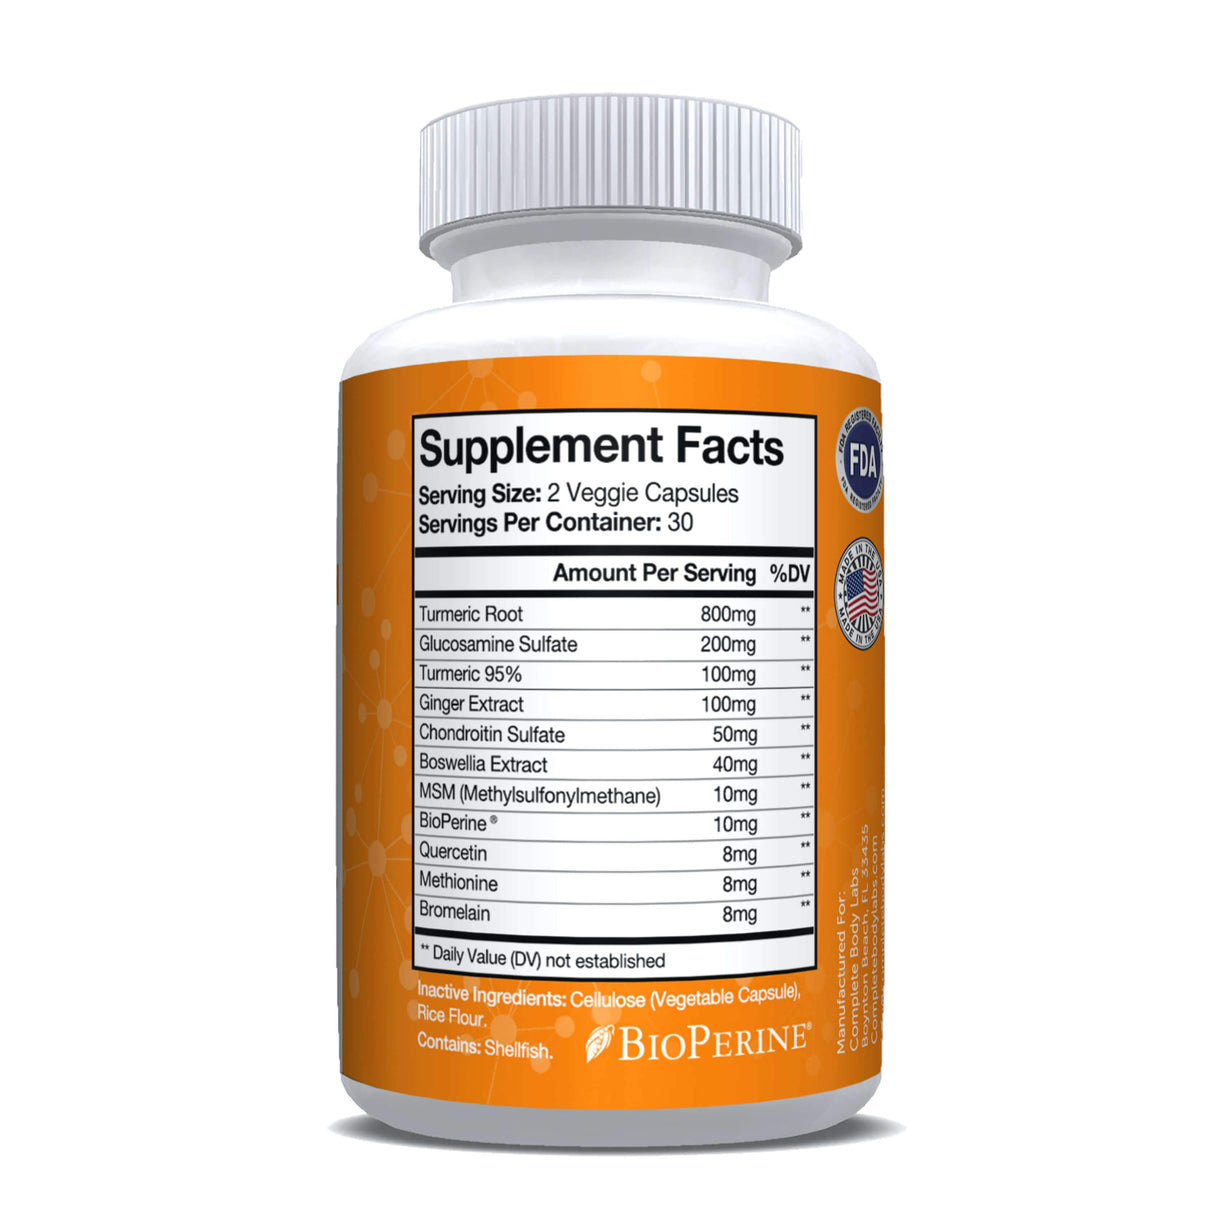 ULTRA STRENGTH TURMERIC + Complete Body Labs | Probiotics, Nootropics, Brain Supplements, Protein Bars, Workout Supplements, Health Supplements, Omega-3 & Essential Vitamins For Men & Women